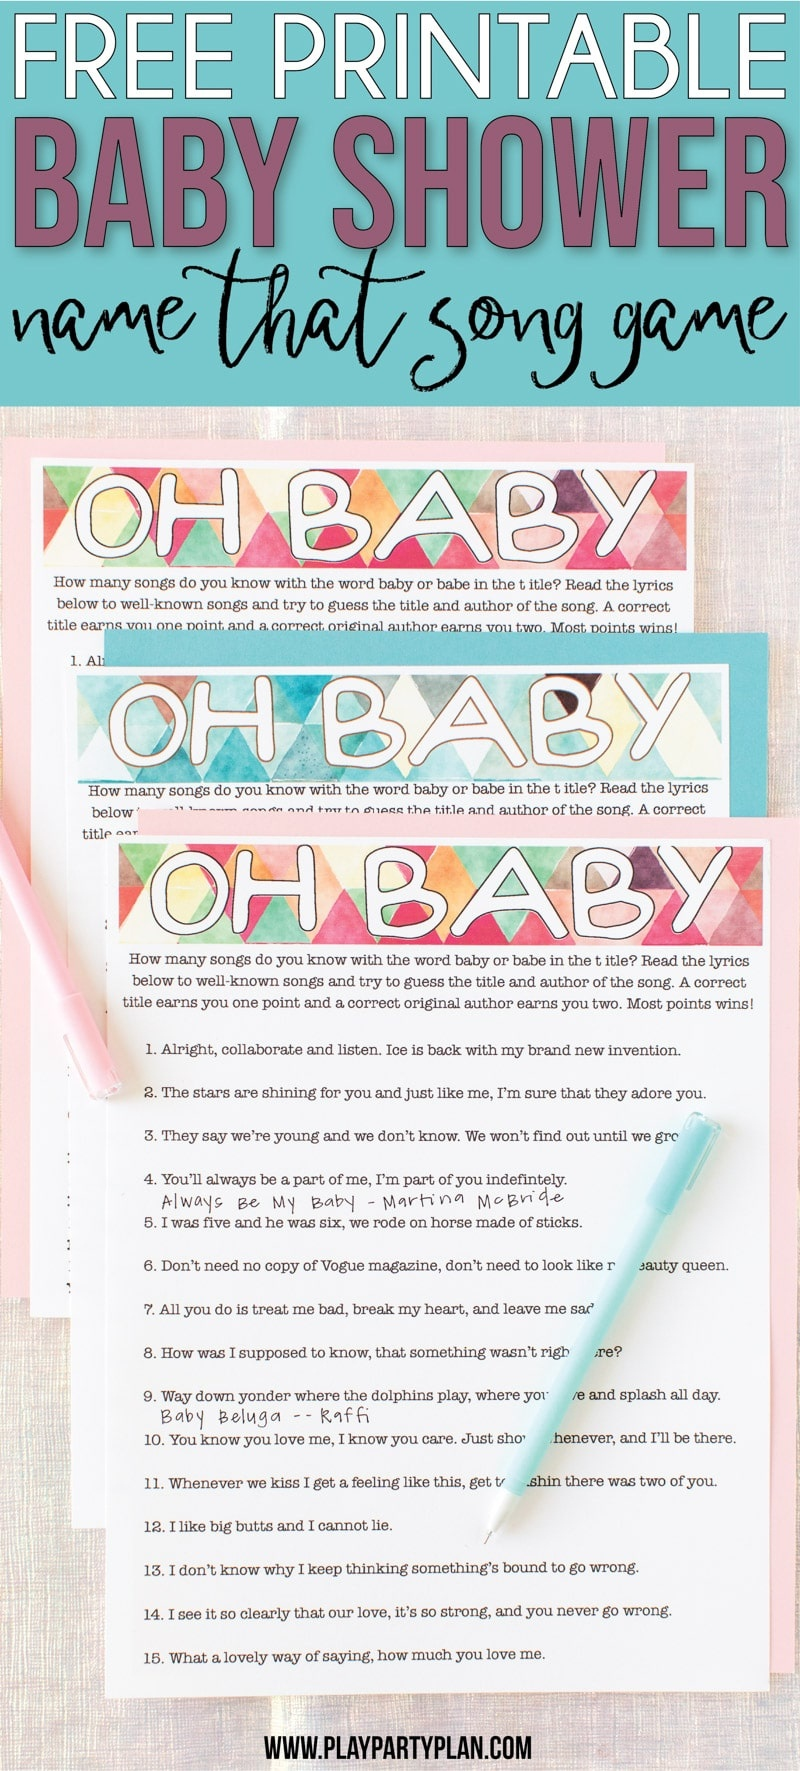 Free Printable Baby Shower Songs Guessing Game - Play Party Plan - Name That Tune Baby Shower Game Free Printable